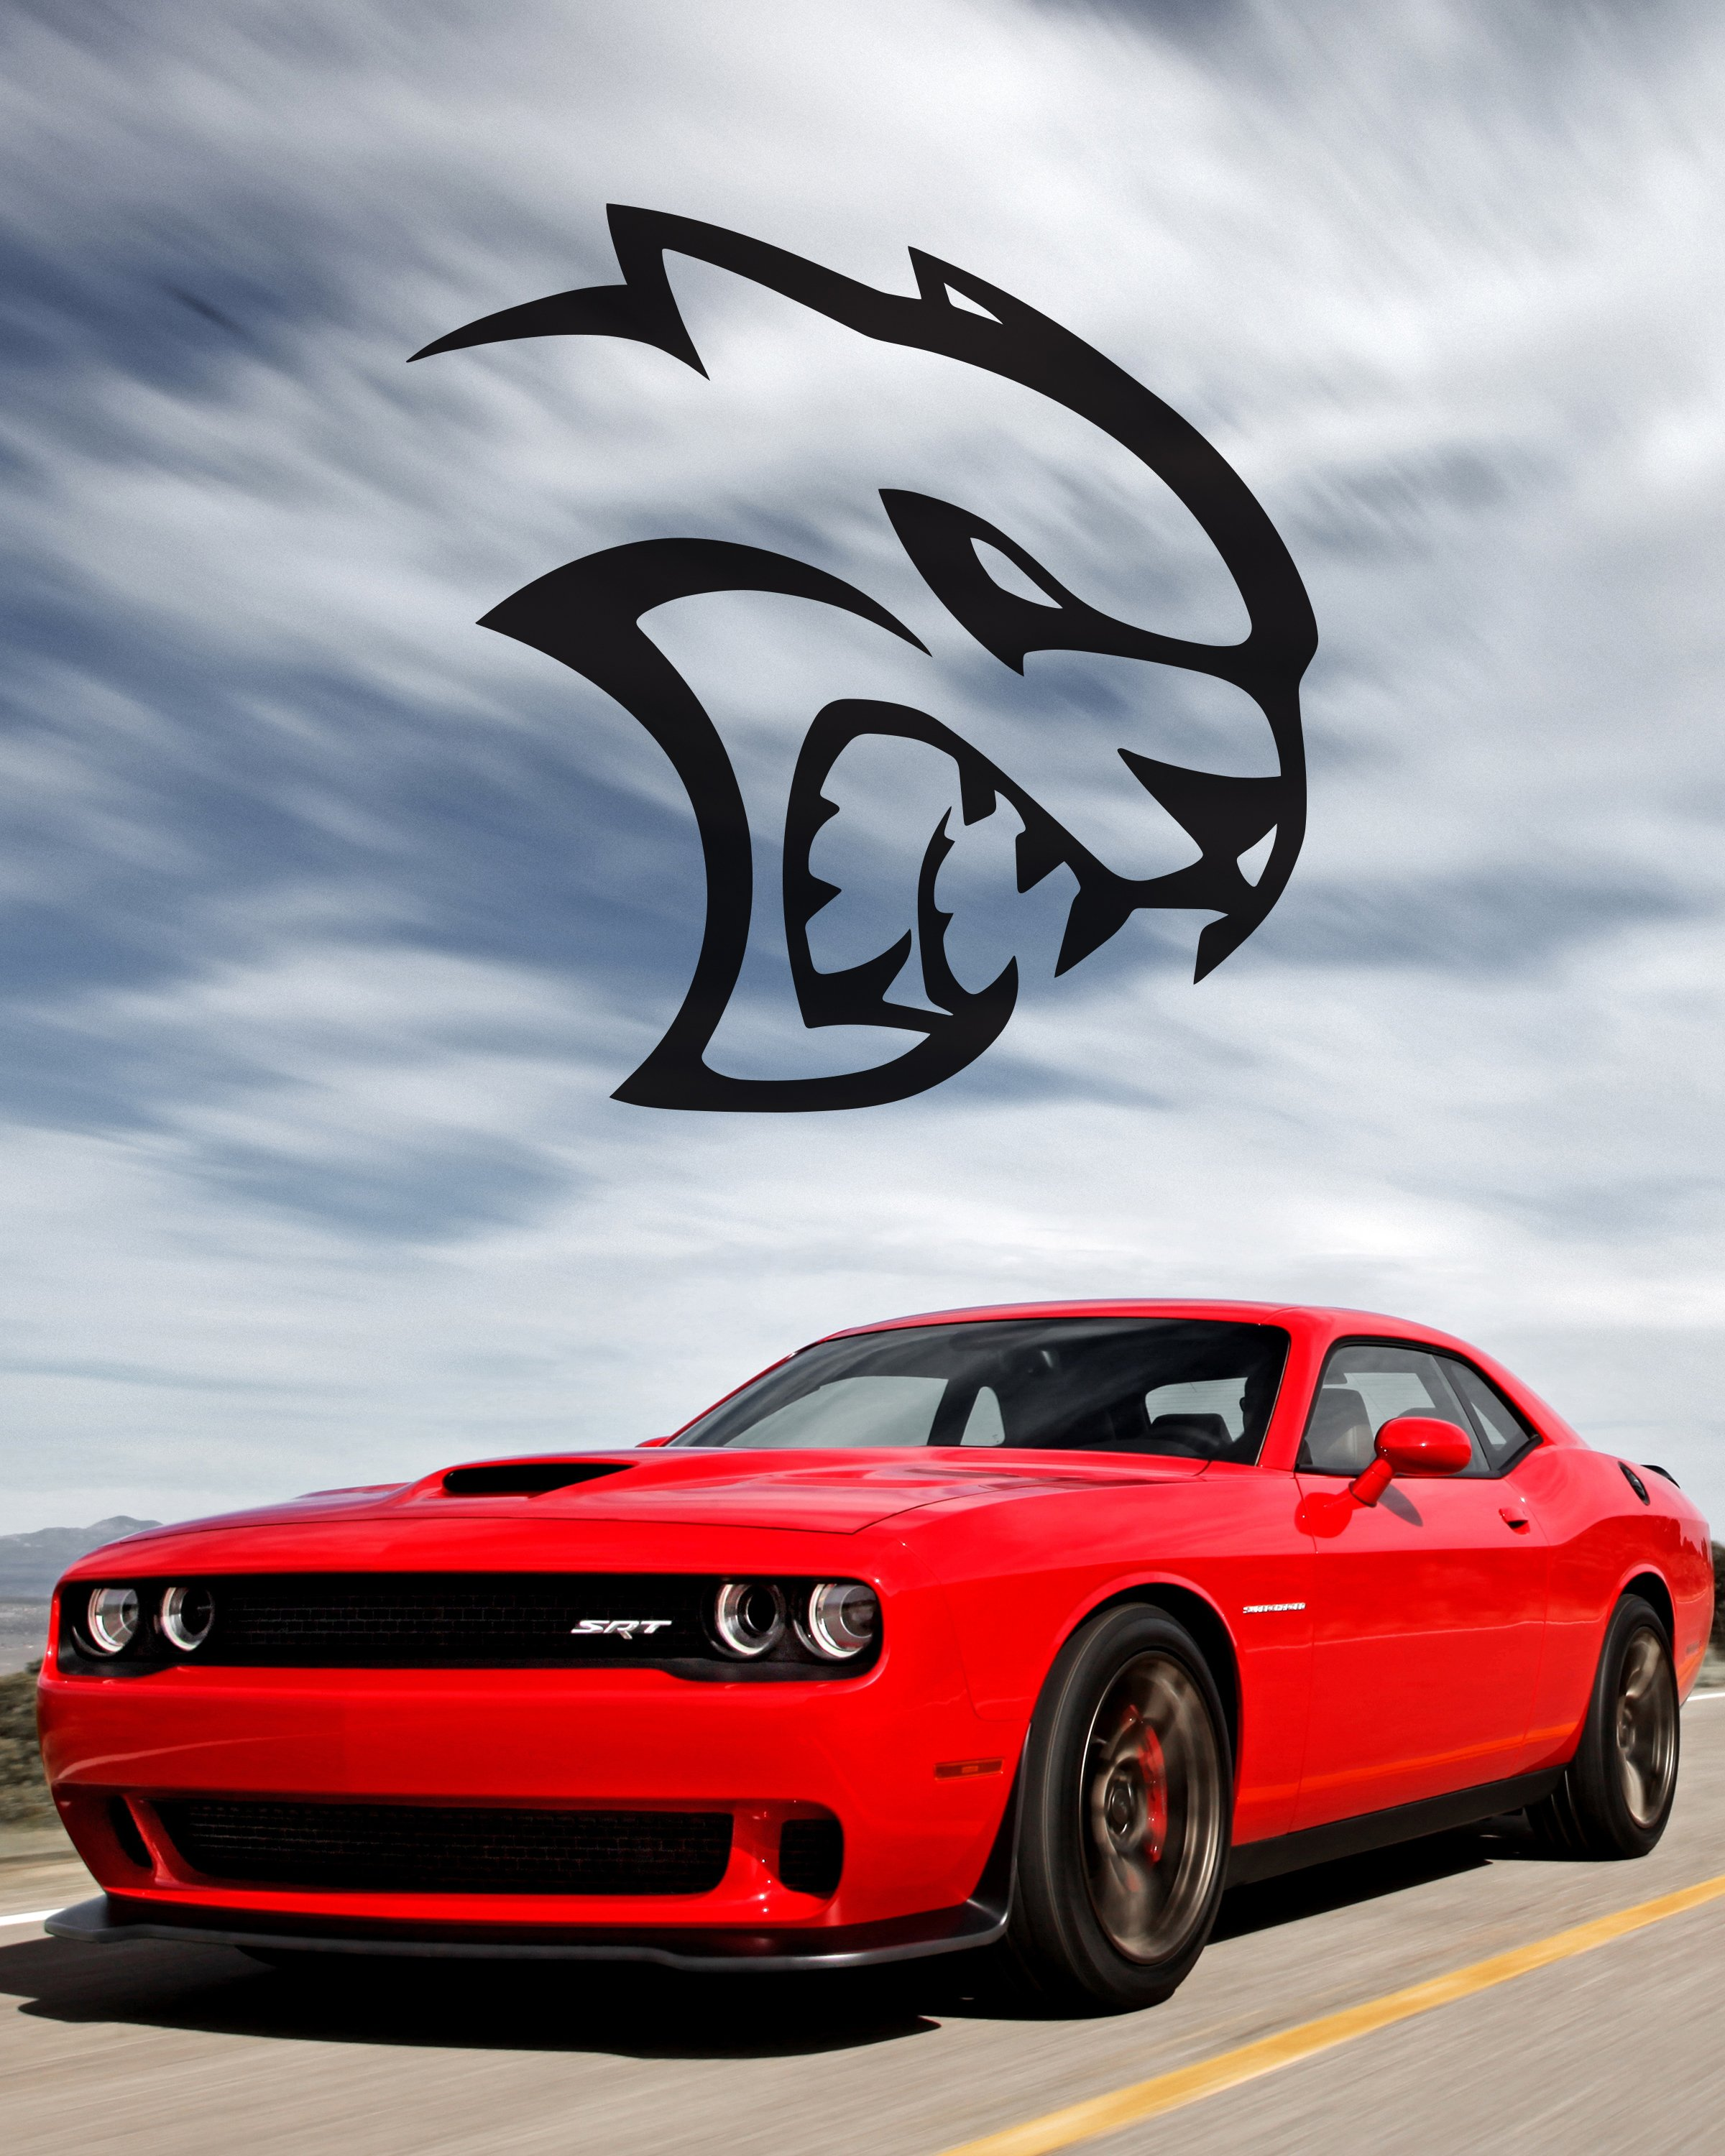 hellcat logo due to dodge hellcat logo wallpaper together with dodge 2400x3000